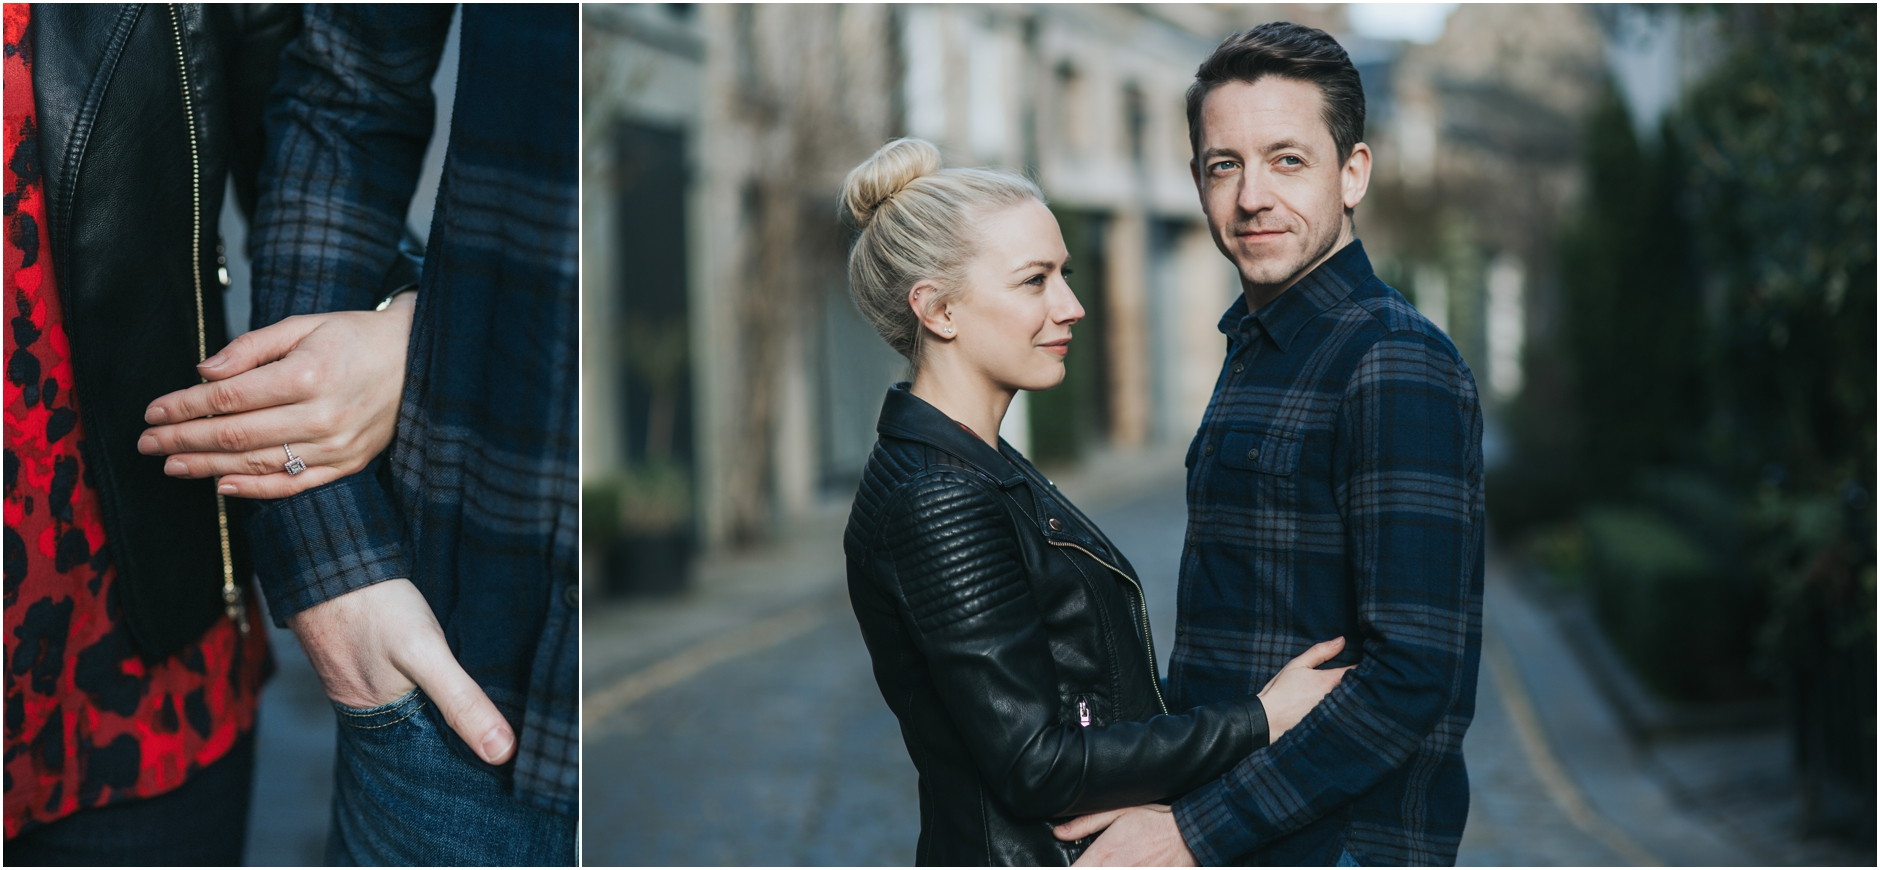 stockbridge engagement photoshoot wedding edinburgh